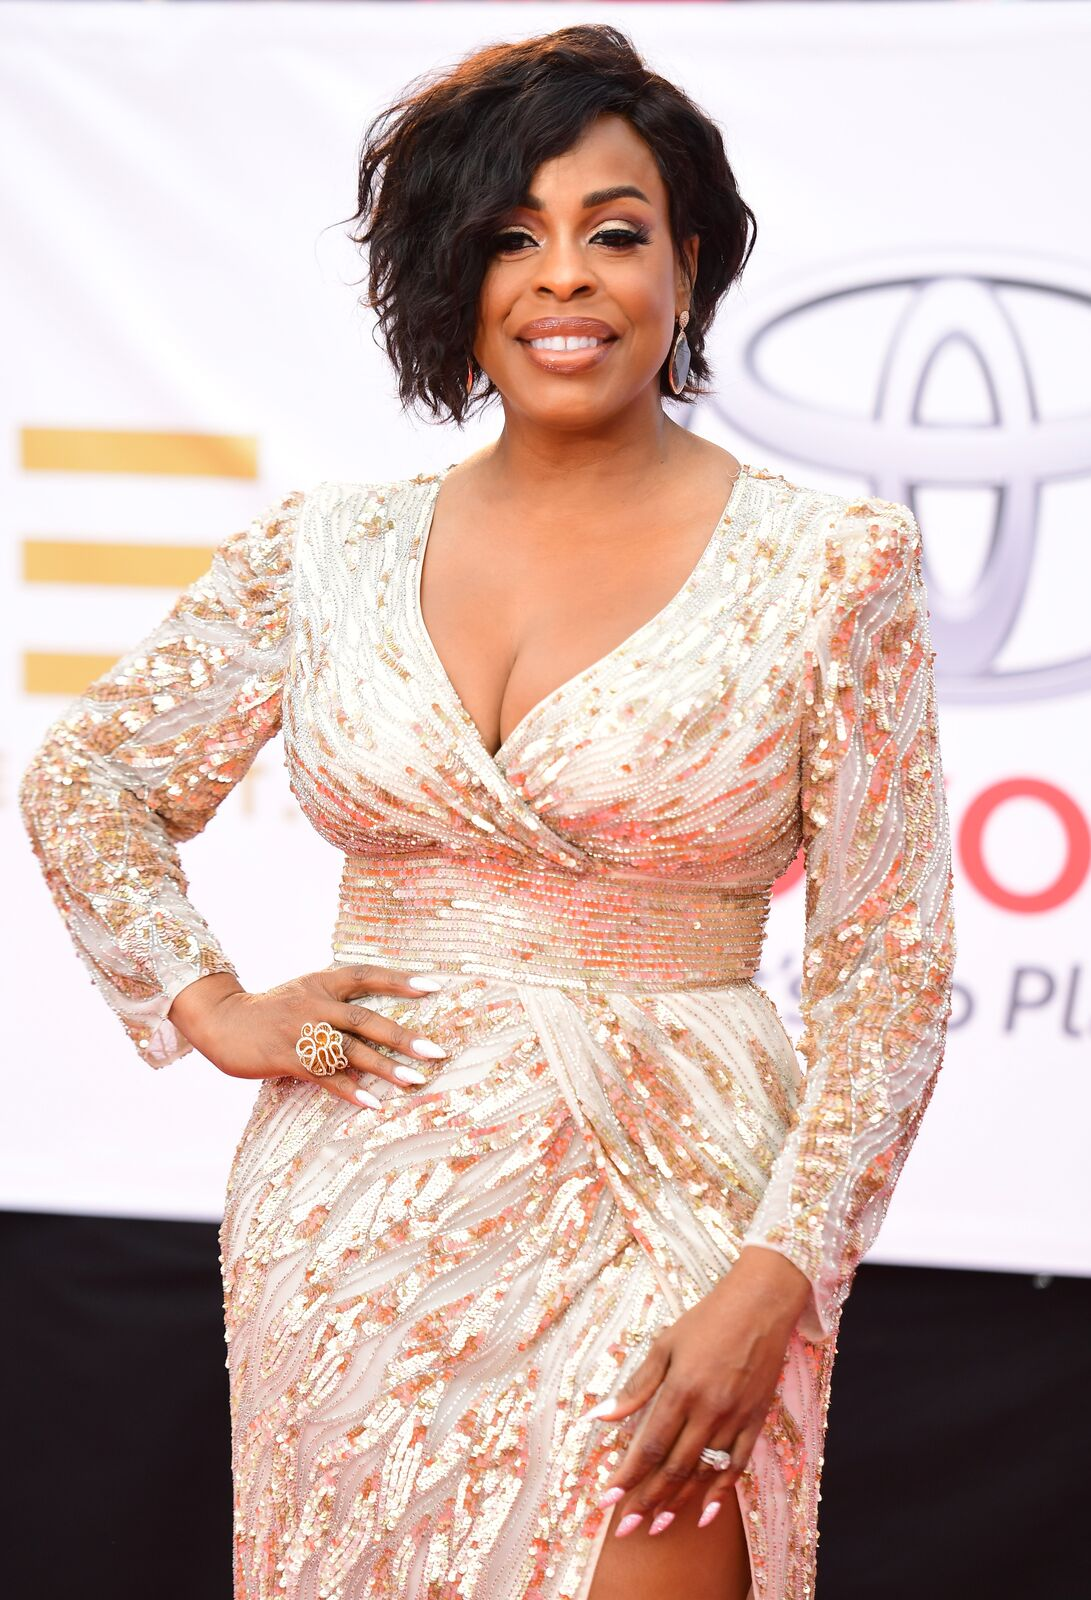 Niecy Nash attends the 49th NAACP Image Awards at Pasadena Civic Auditorium on January 15, 2018 | Photo: Getty Images